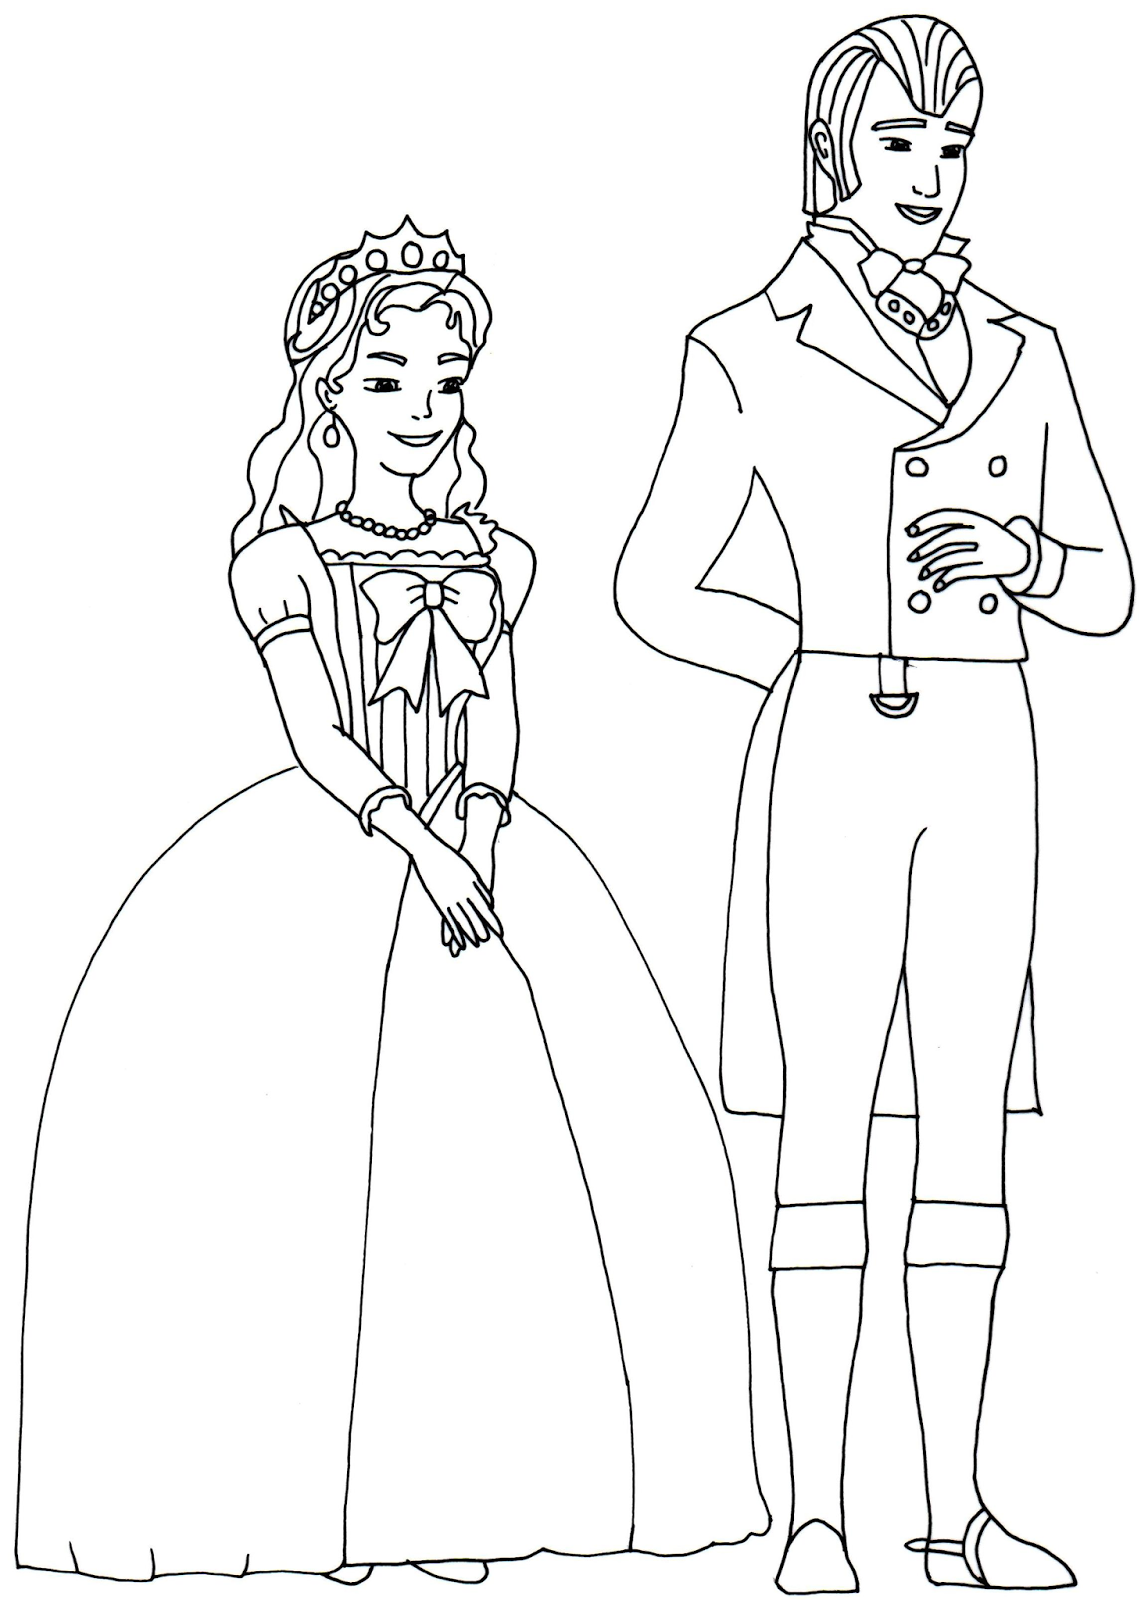 Coloring pages queen elizabeth - British Kings And Princes Colouring Pages Queen Elizabeth Ii